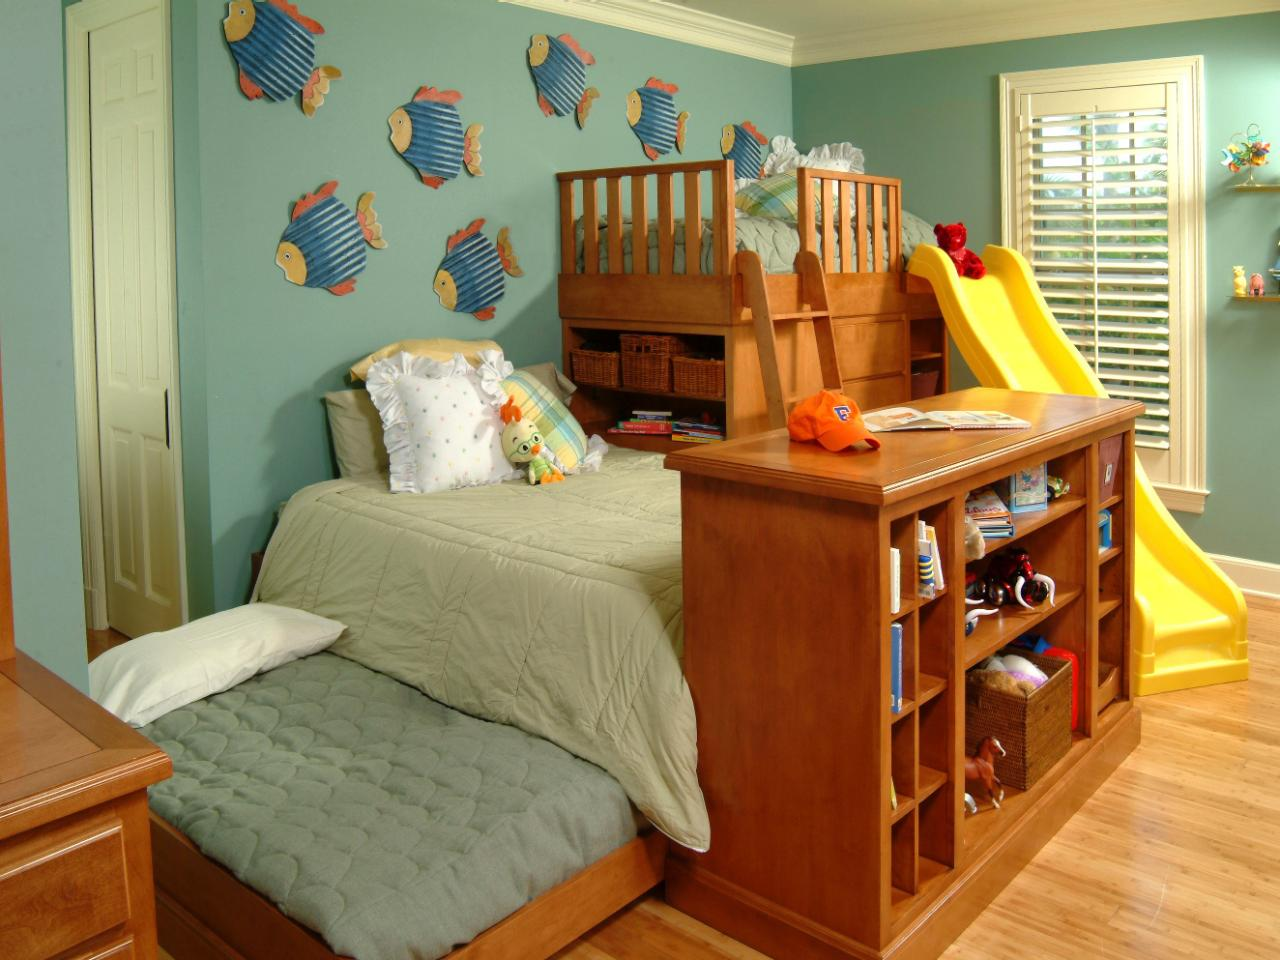 3 Twin Beds In The Space Of 1 Kids 39 Rooms Storage Solutions Hgtv